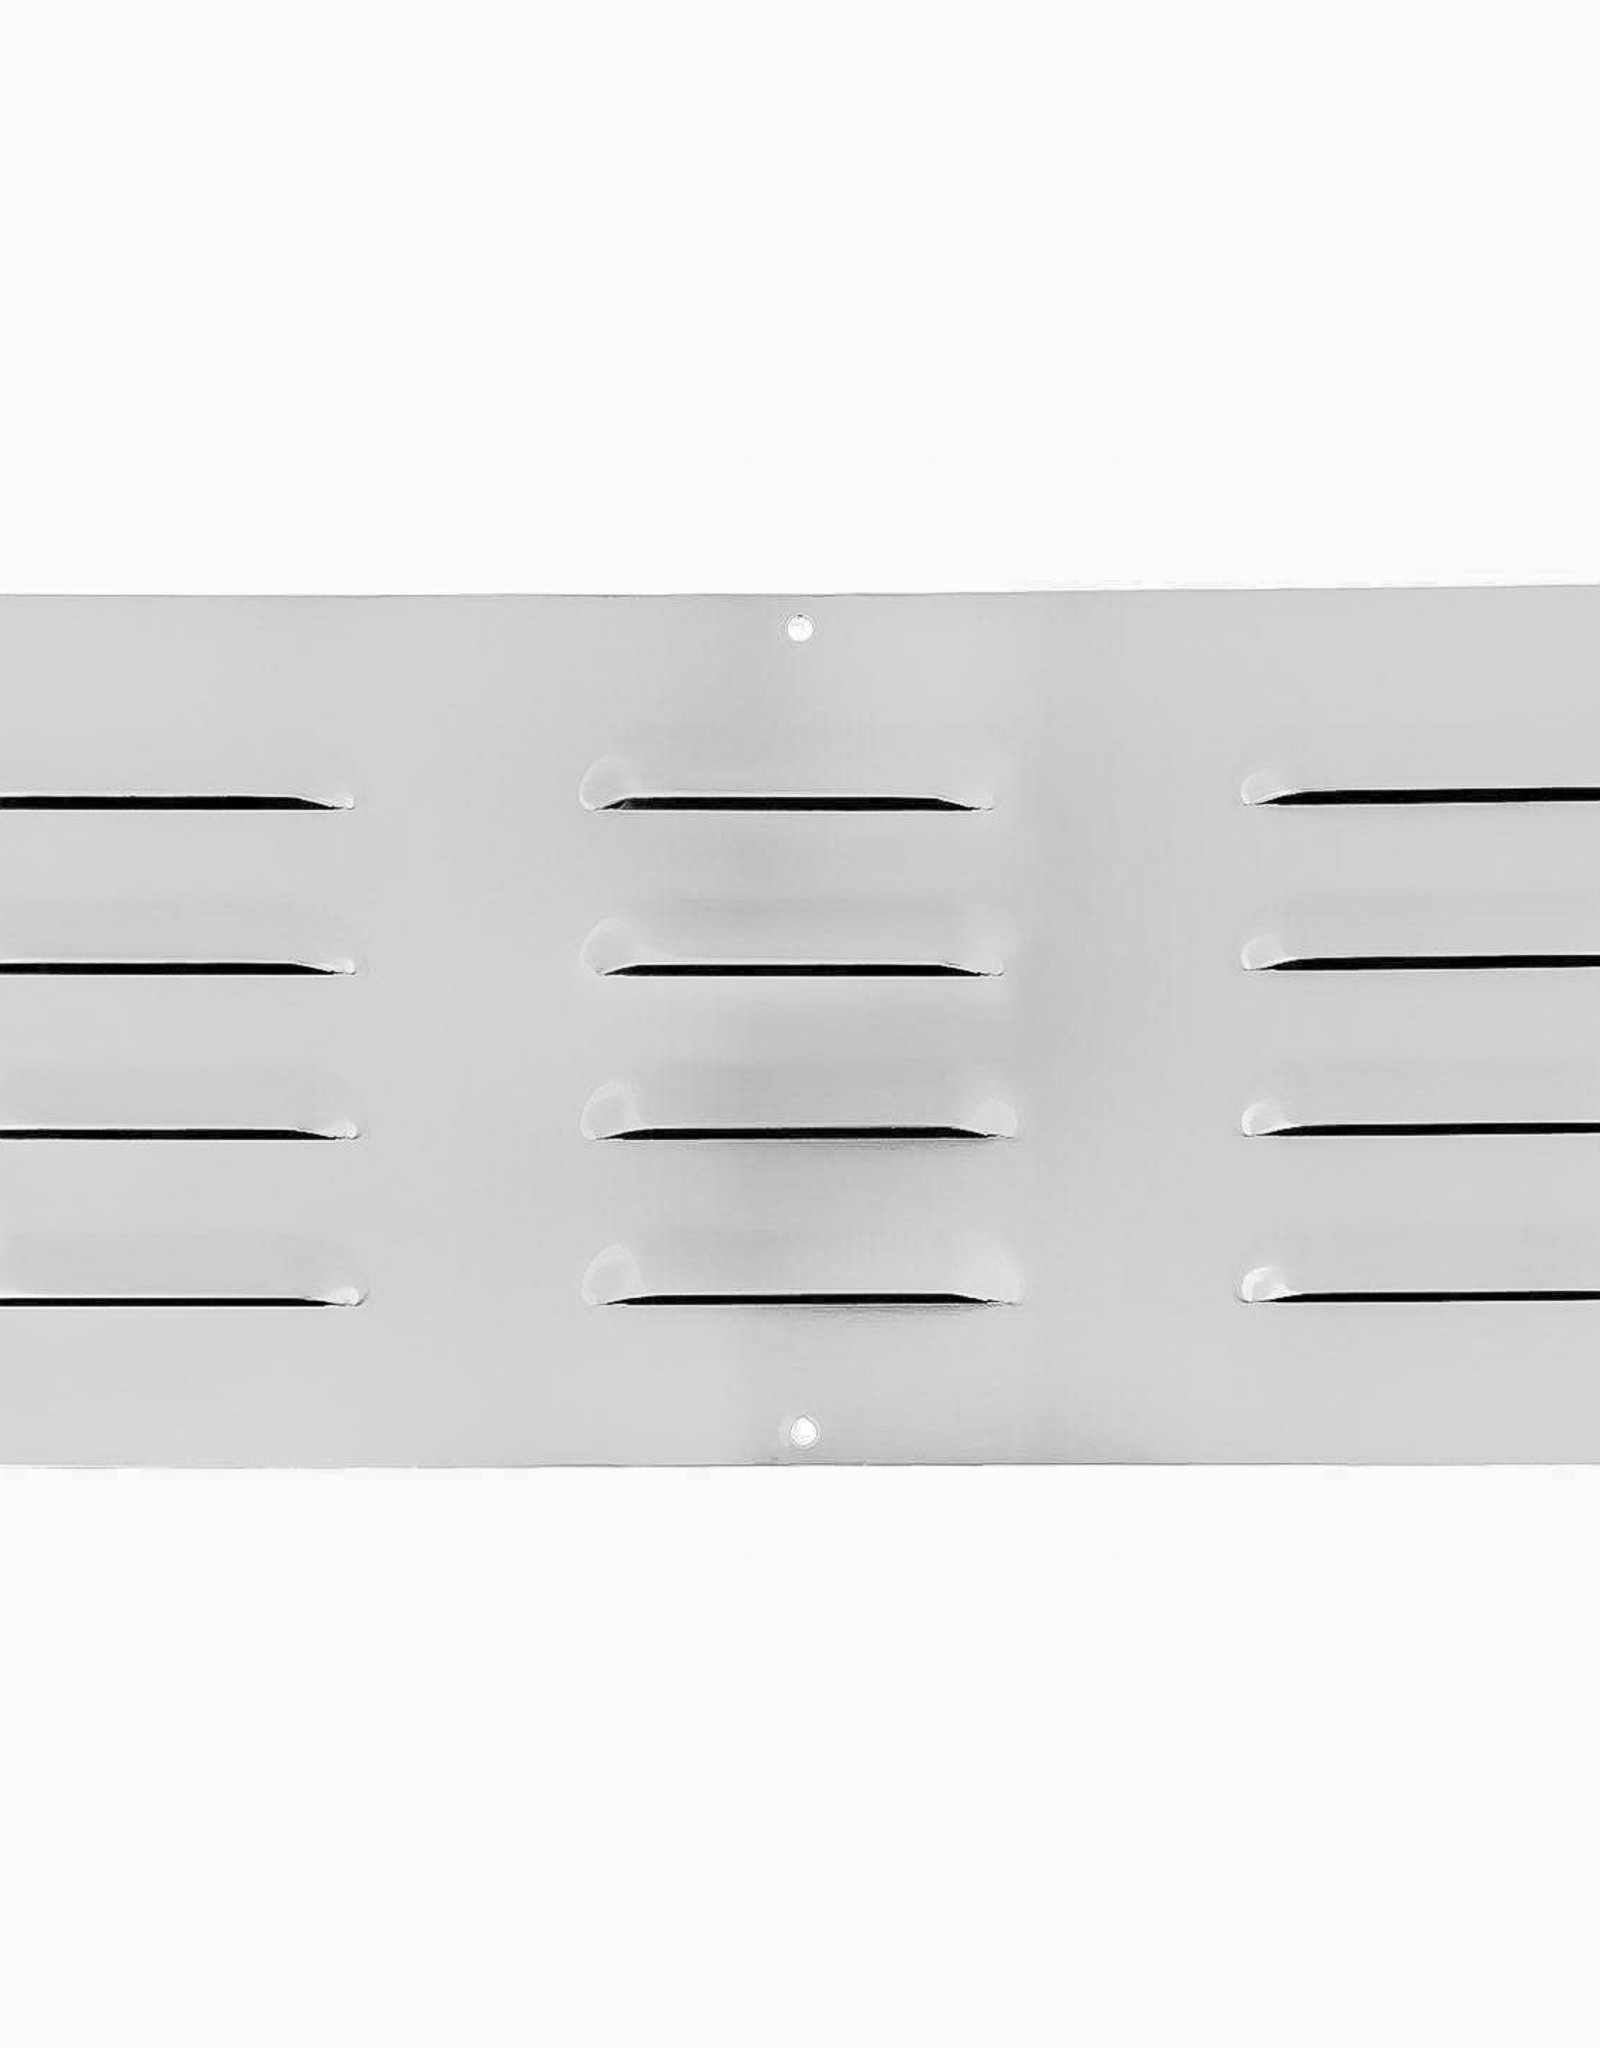 Blaze Outdoor Products Blaze 6 X 14 Stainless Steel Island Vent Panel - BLZ-ISLAND-VENT